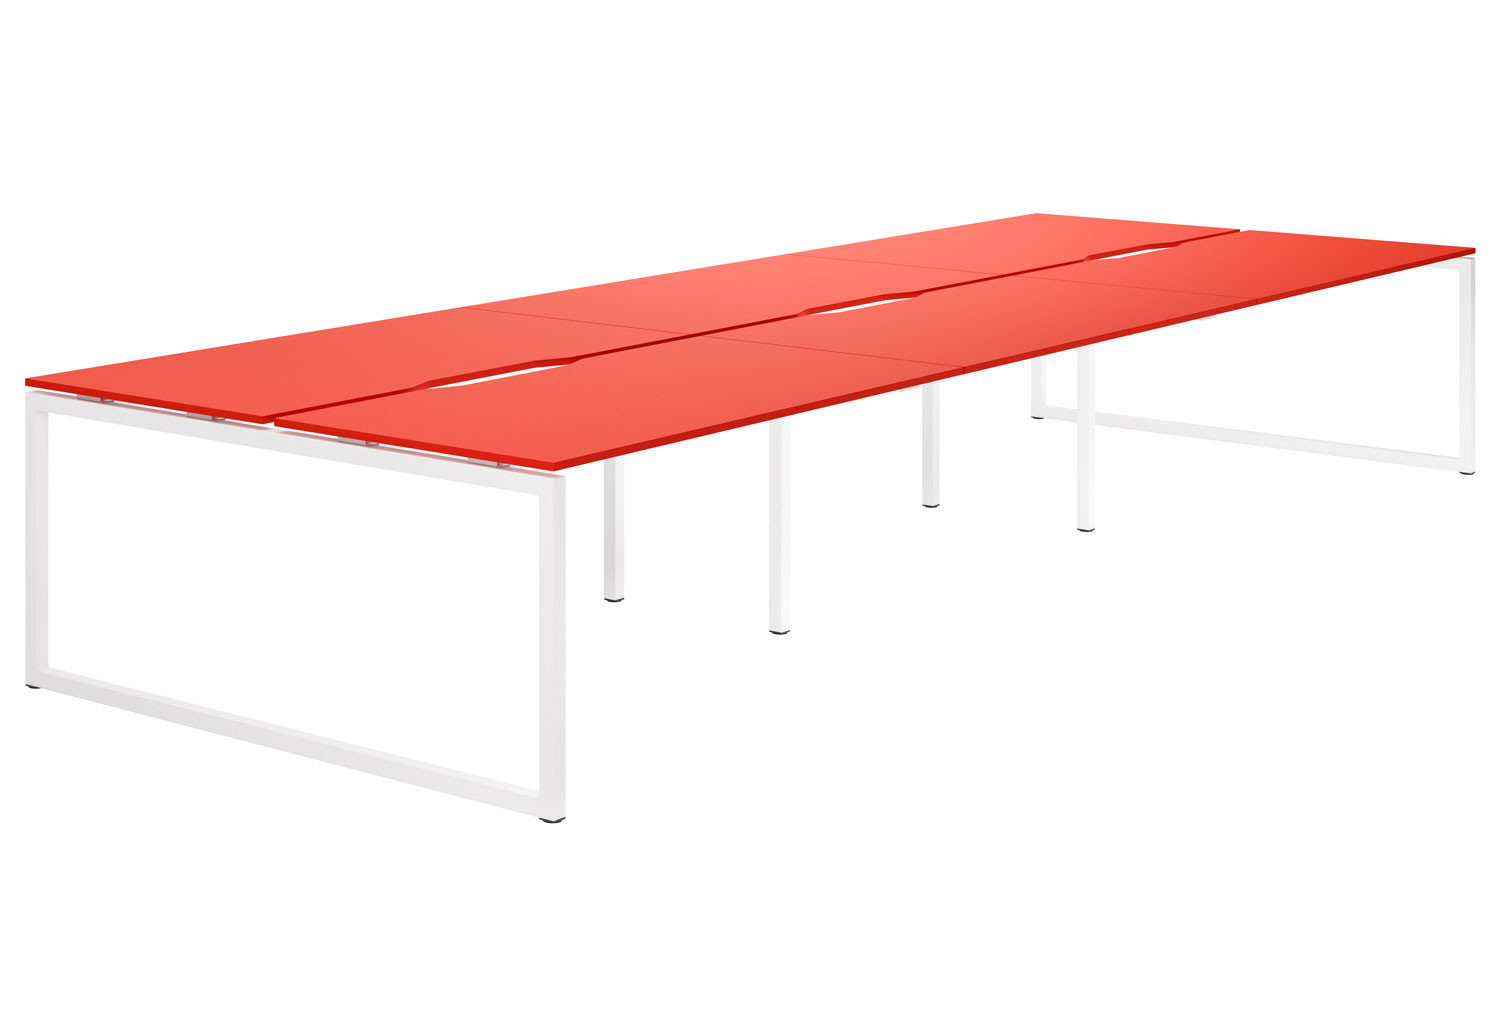 Campos Hooped Leg 6 Person Back To Back Bench Desk (Red)